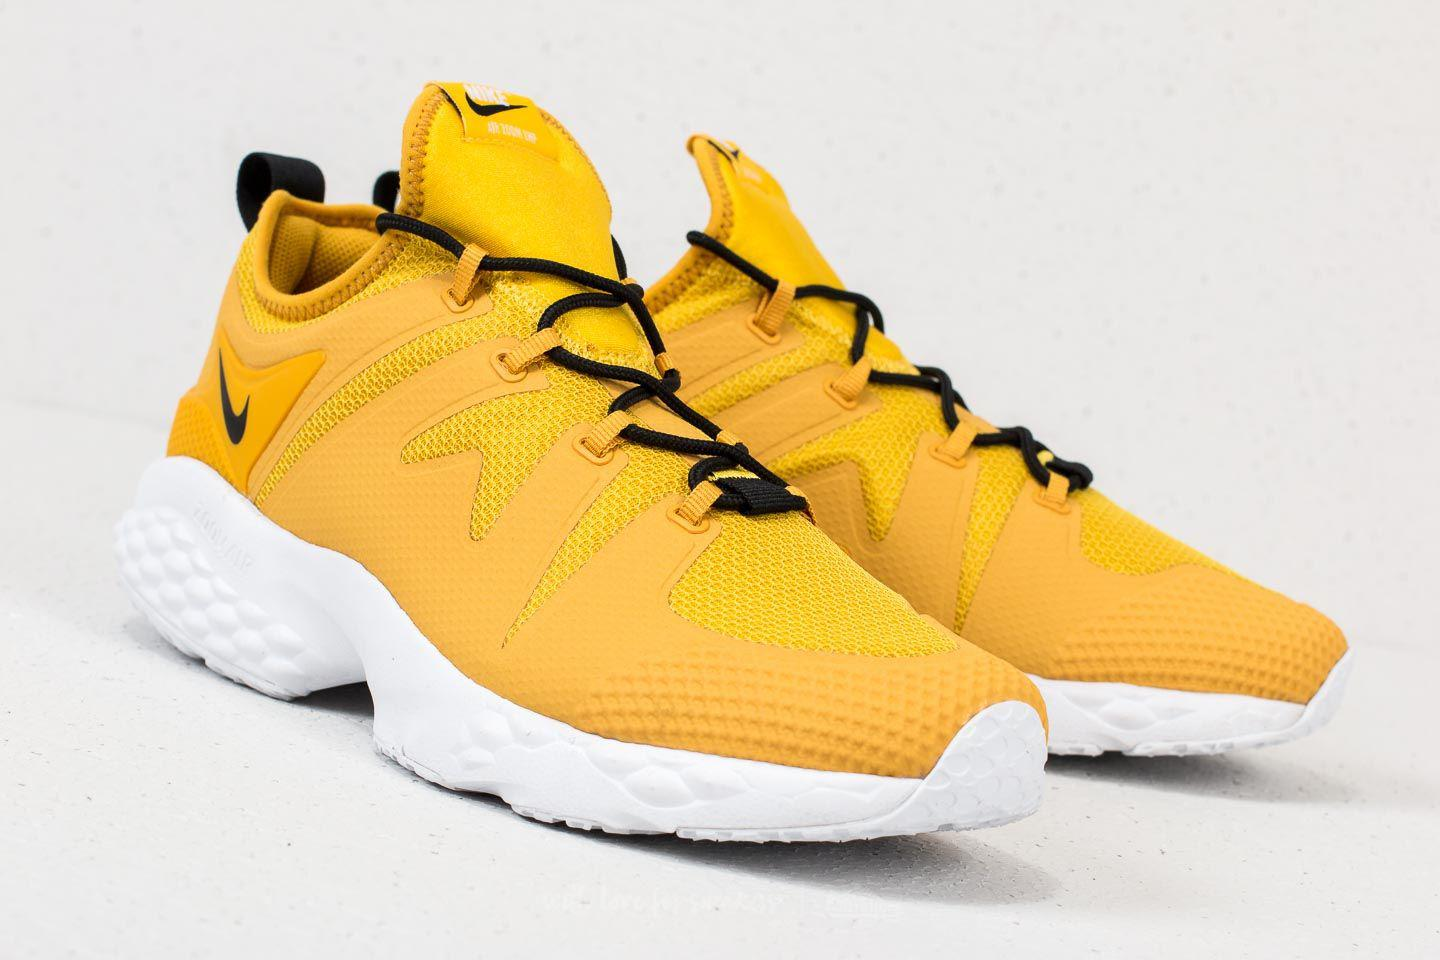 classe Domenica fragranza  Nike Rubber Air Zoom Lwp '16 Mineral Yellow/ Black for Men - Lyst